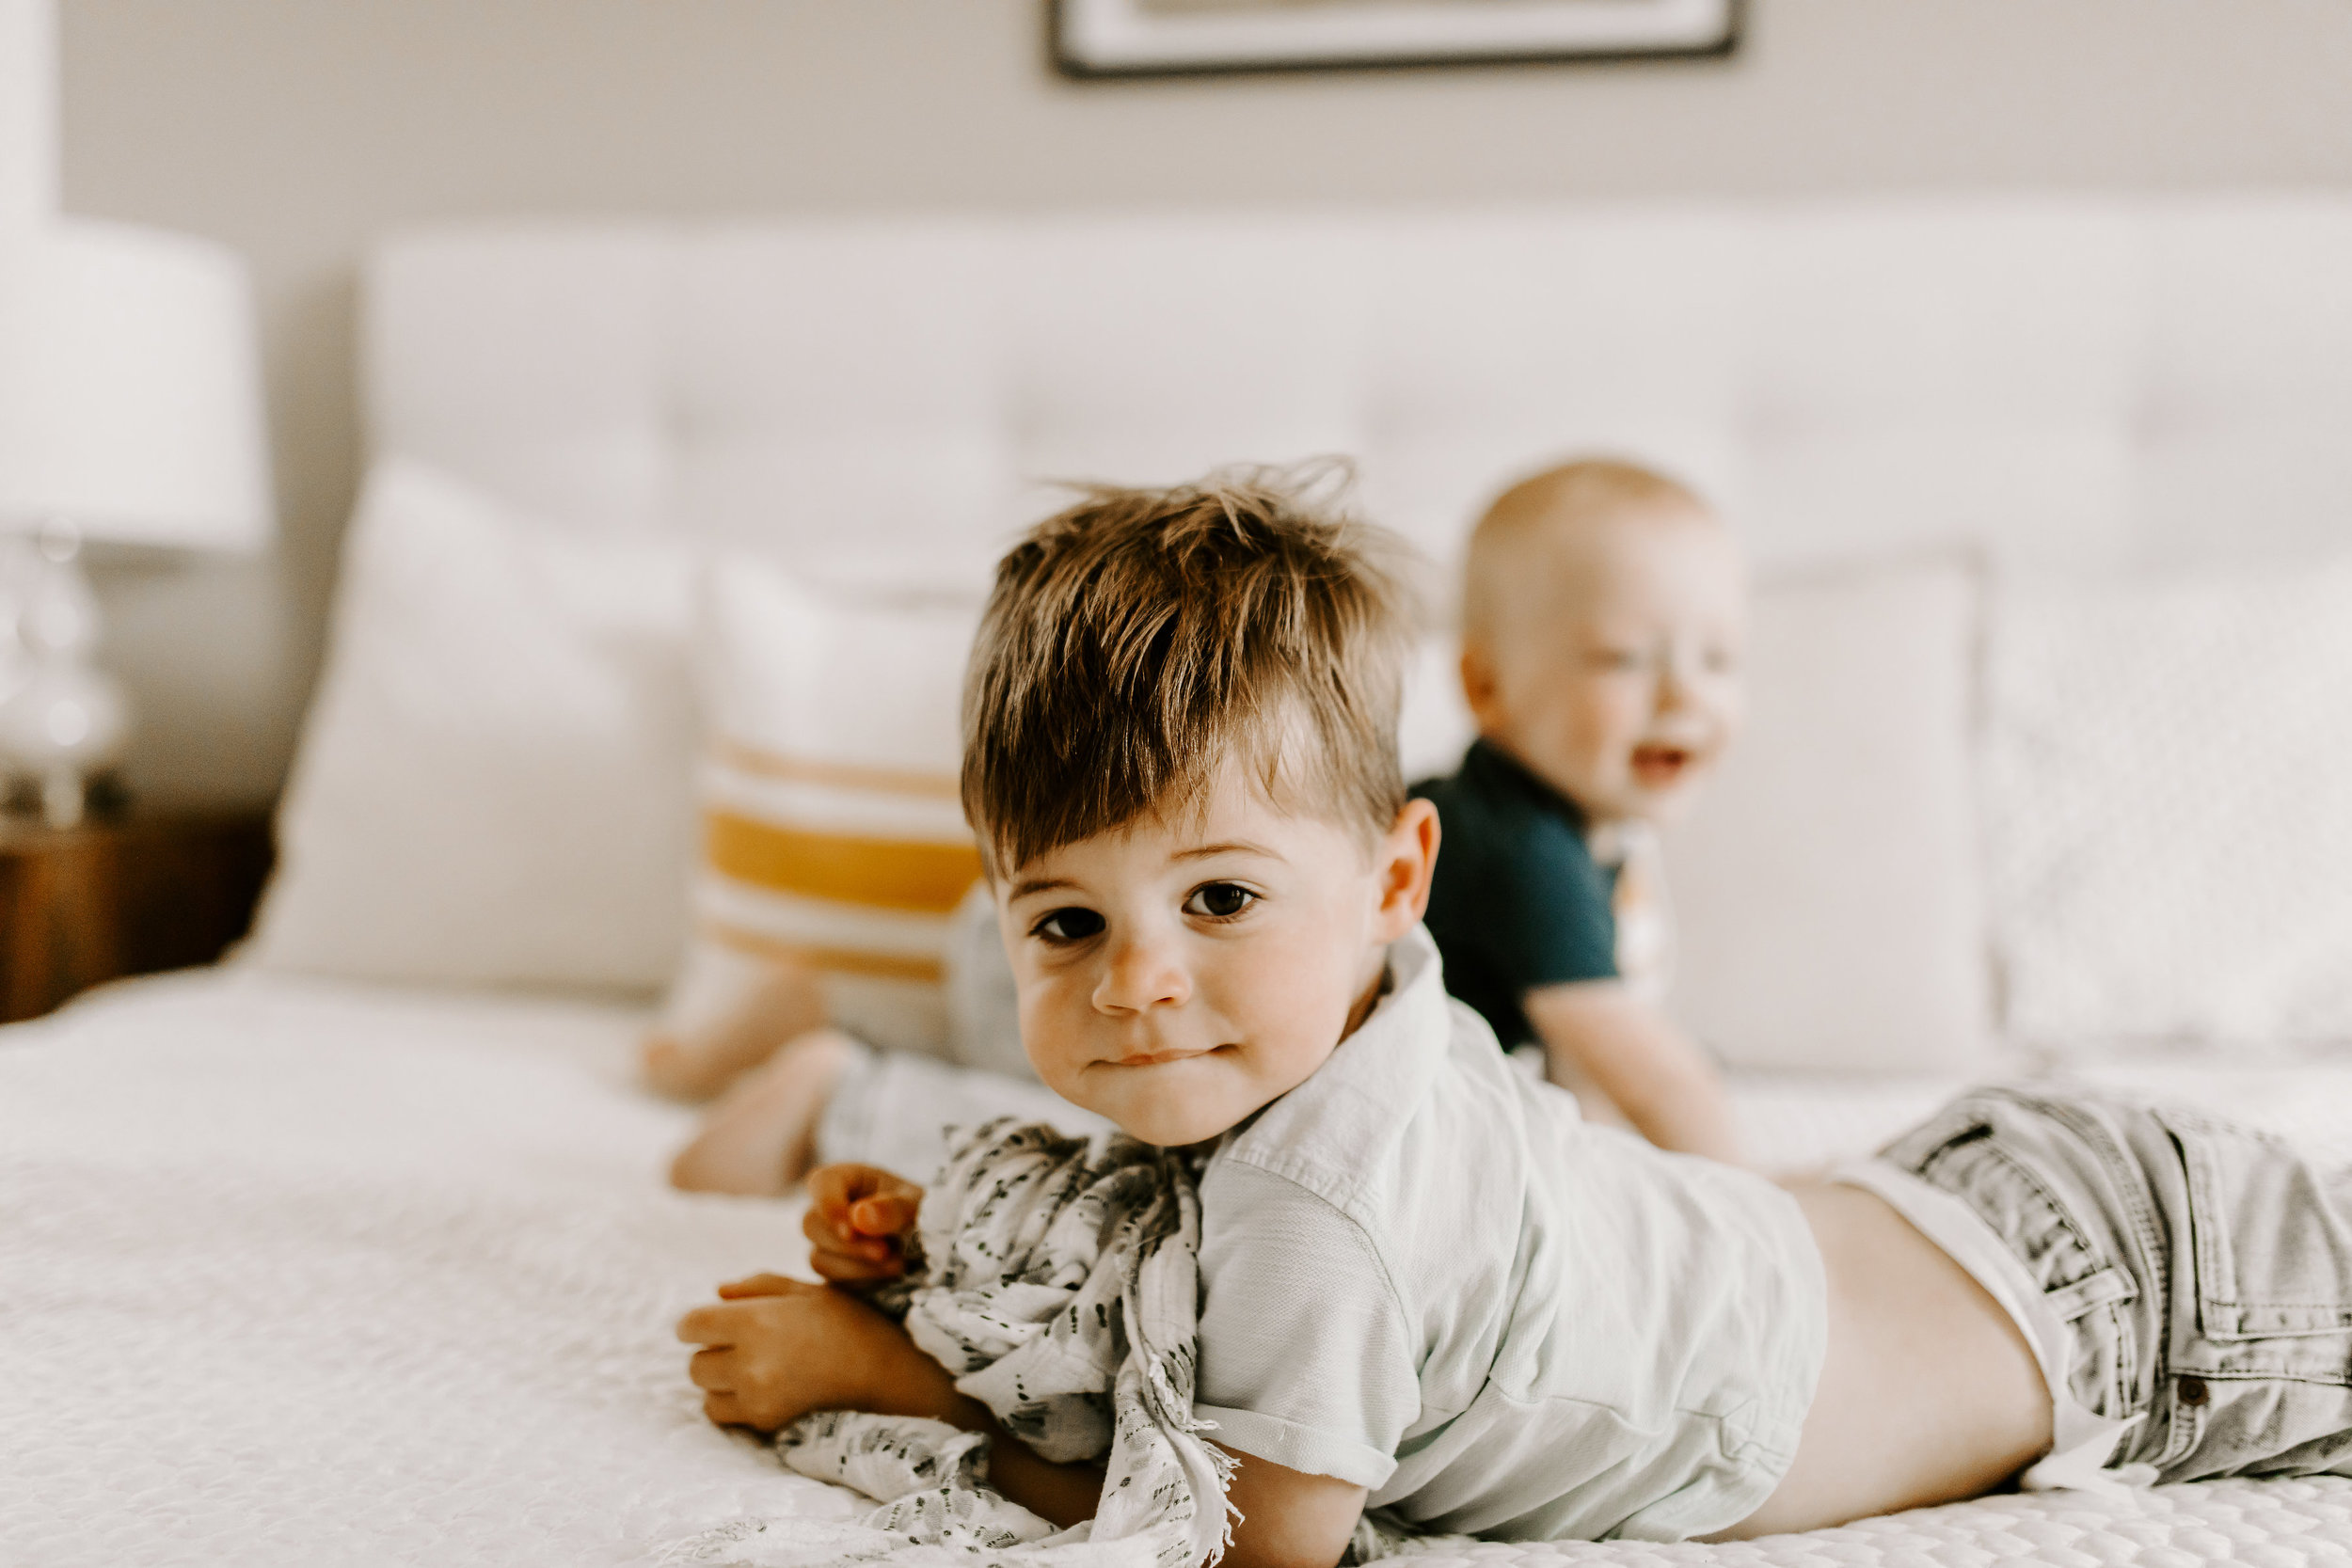 meeting in your home - Having worked with families and their sleep challenges for almost 10 years, we can say with confidence that there is no cookie cutter situation and no cookie cutter solution. It can be immensely helpful to have someone meet you, meet your baby, and get a sense of your space, parenting style, and baby's developmental picture. Our options for work in home are outlined below, as is our pricing, but of course an initial conversation is highly encouraged — reach out.